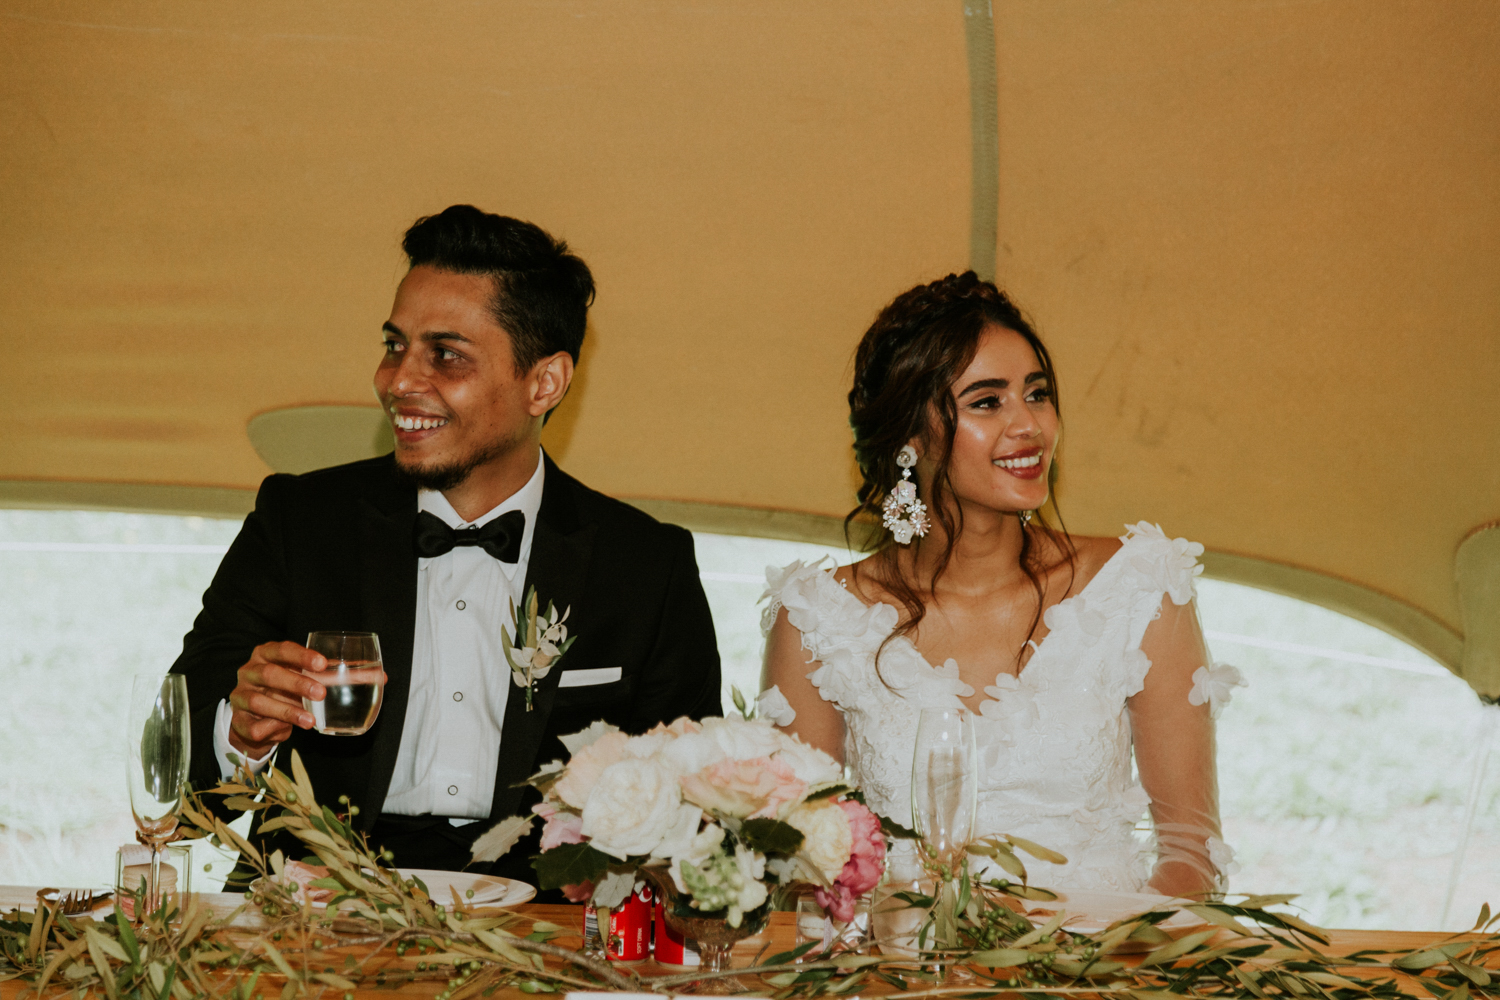 Forest Wedding Cape Town - Bianca Asher Photography-34.jpg